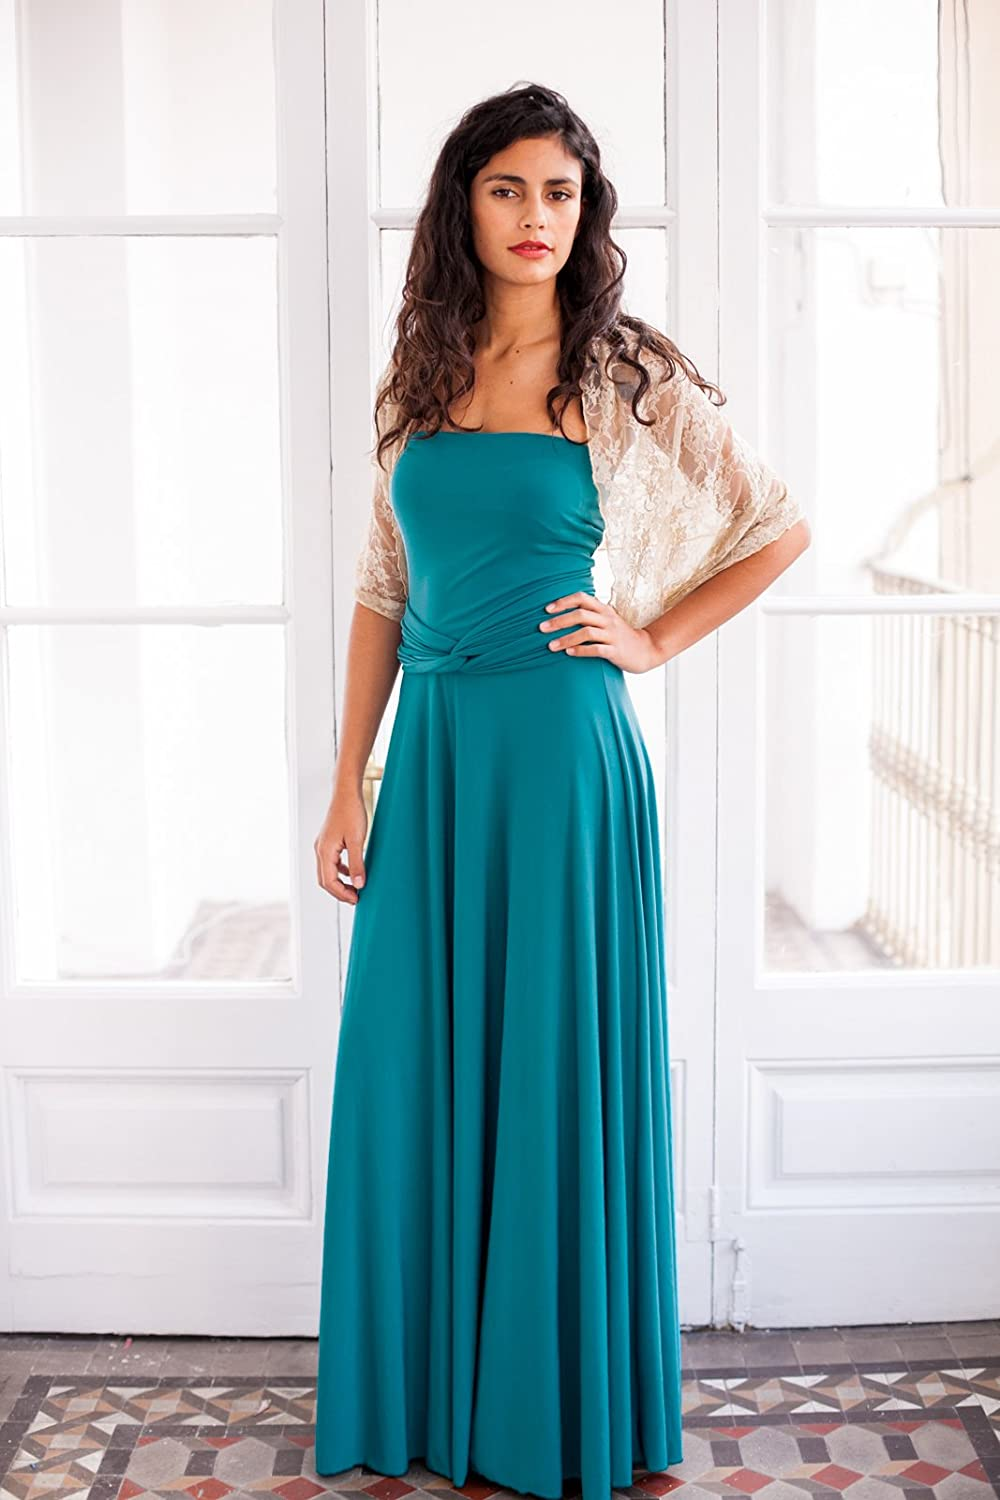 Amazon.com: Long convertible turquoise dress, turquoise wrap dress, long sleeve infinity dress, long teal dress, long turquoise prom dress, event dress: ...